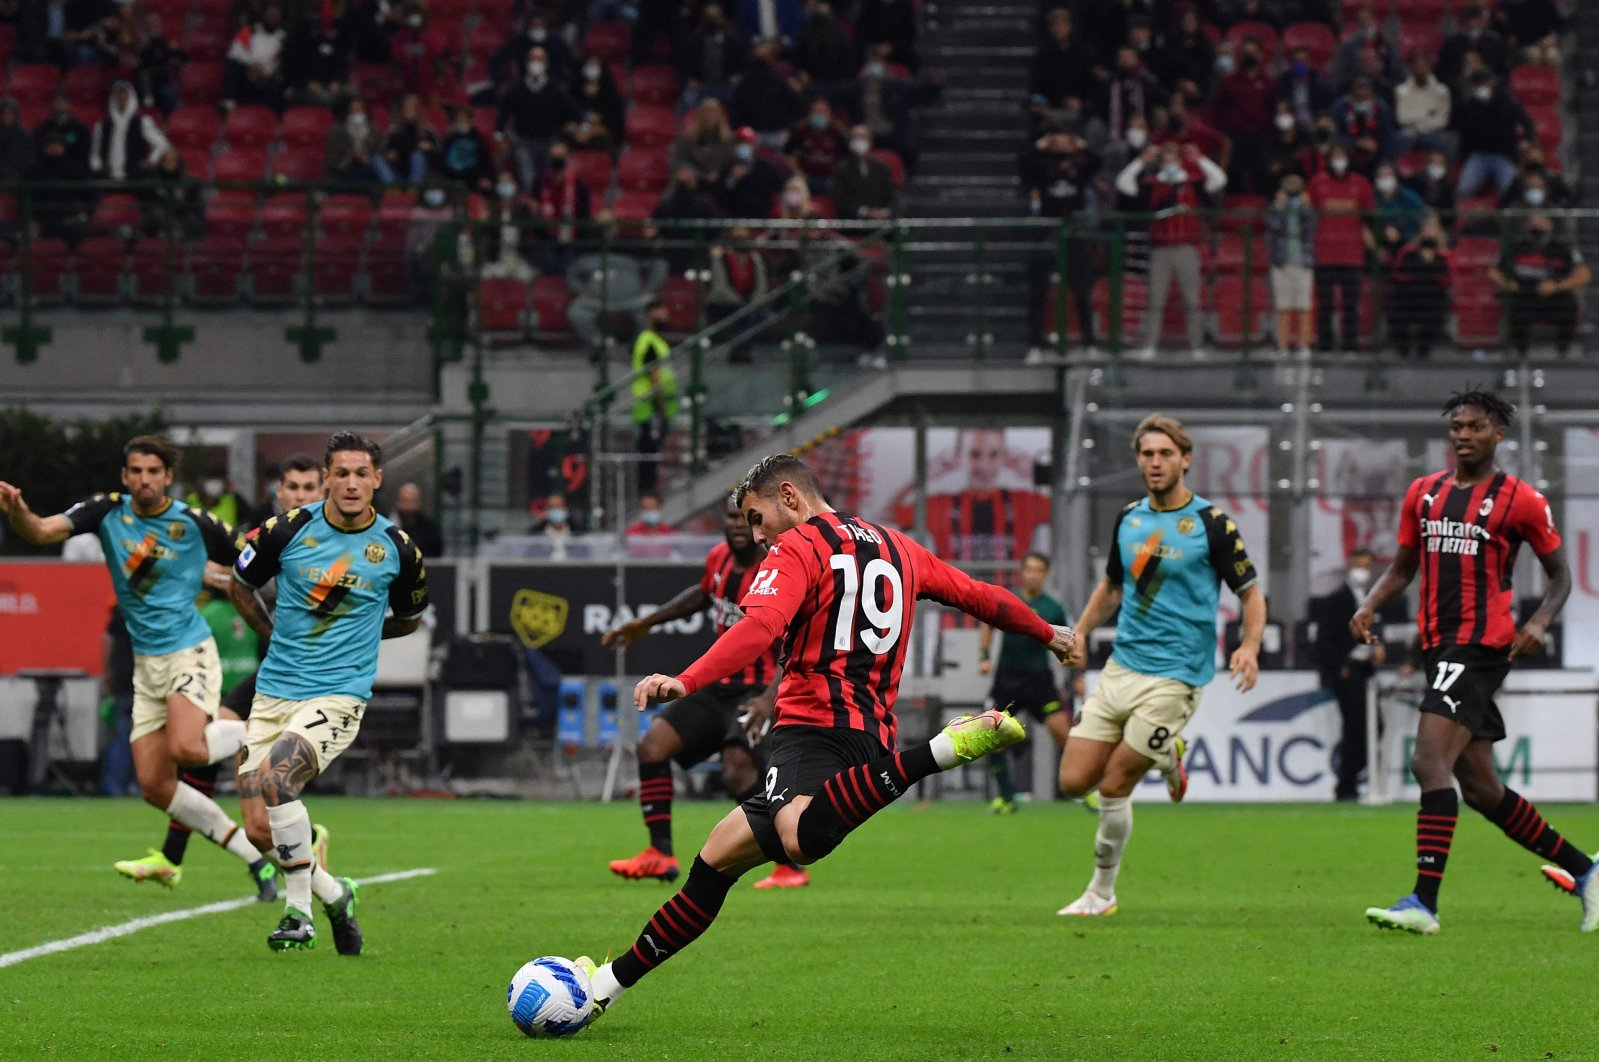 AC Milan's French defender Theo Hernandez (C) shoots to score during a Serie A match against Venezia at the San Siro, Milan, Italy, Sept. 22, 2021. (AFP Photo)